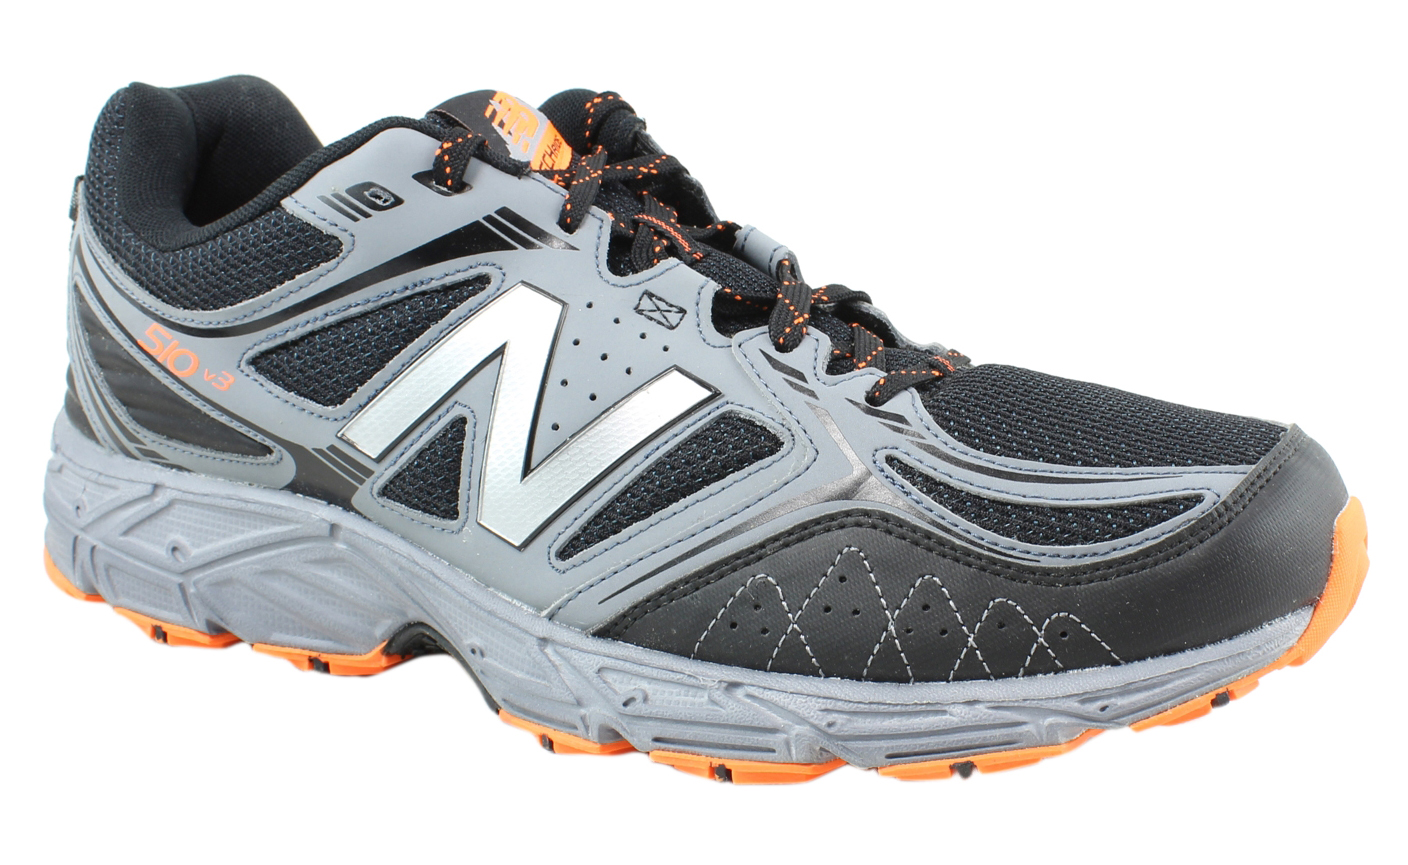 online store 6ce72 a8808 New Balance Mens Mt510ll3 Black Grey Hiking Shoes Size 15 15 15 (36861)